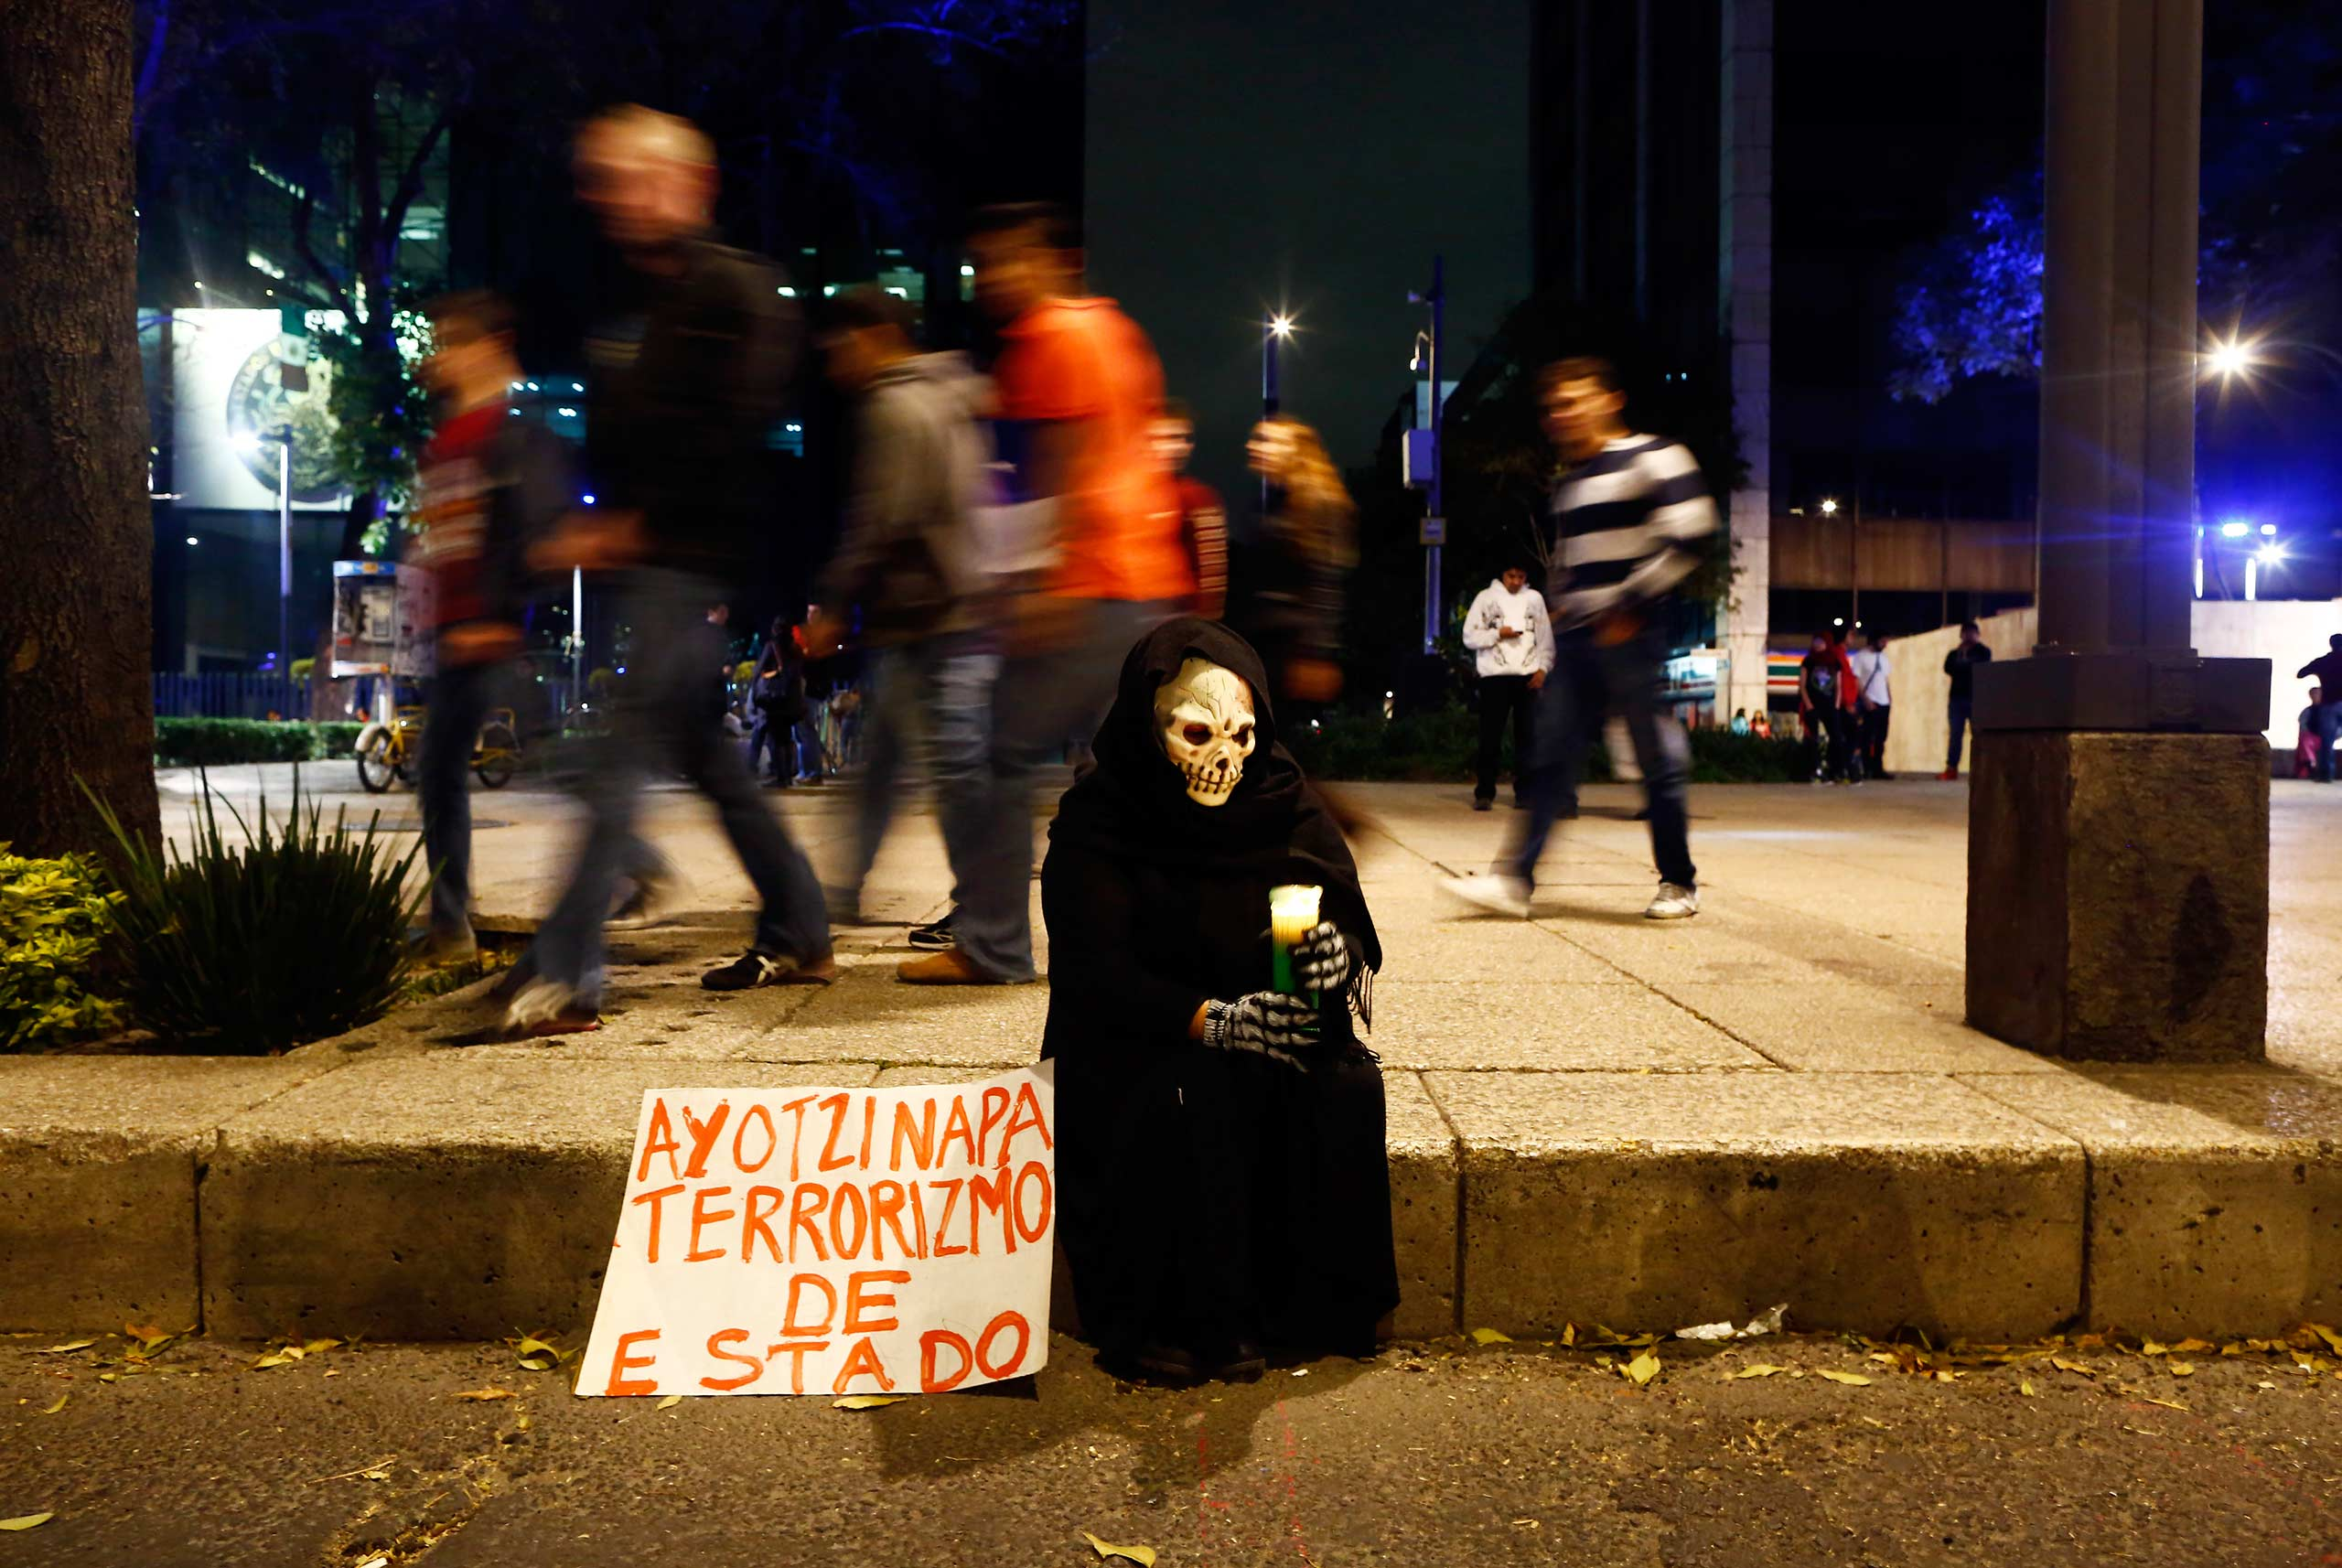 A person in a disguise sits on a sidewalk holding a candle during a protest in Mexico City on November 8, 2014.